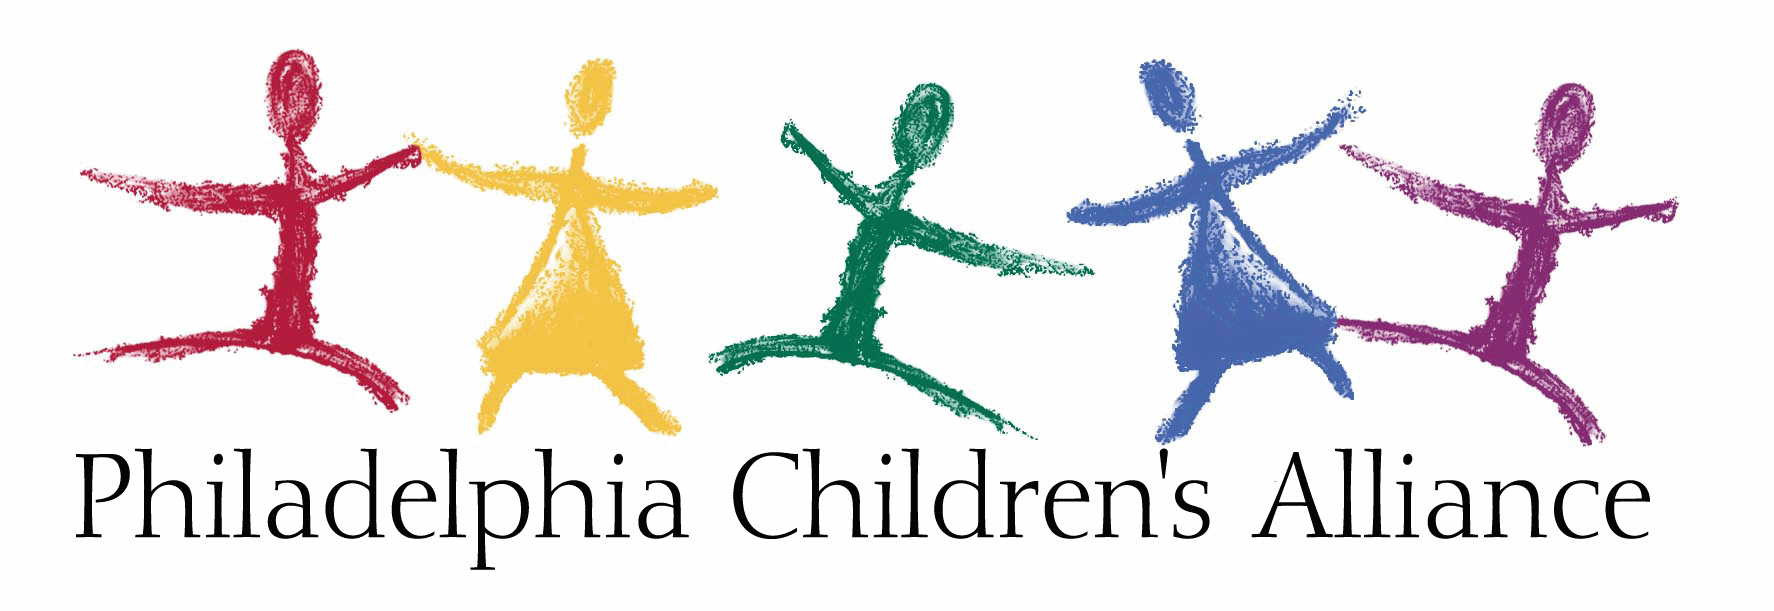 Resources | Philadelphia Children's Alliance